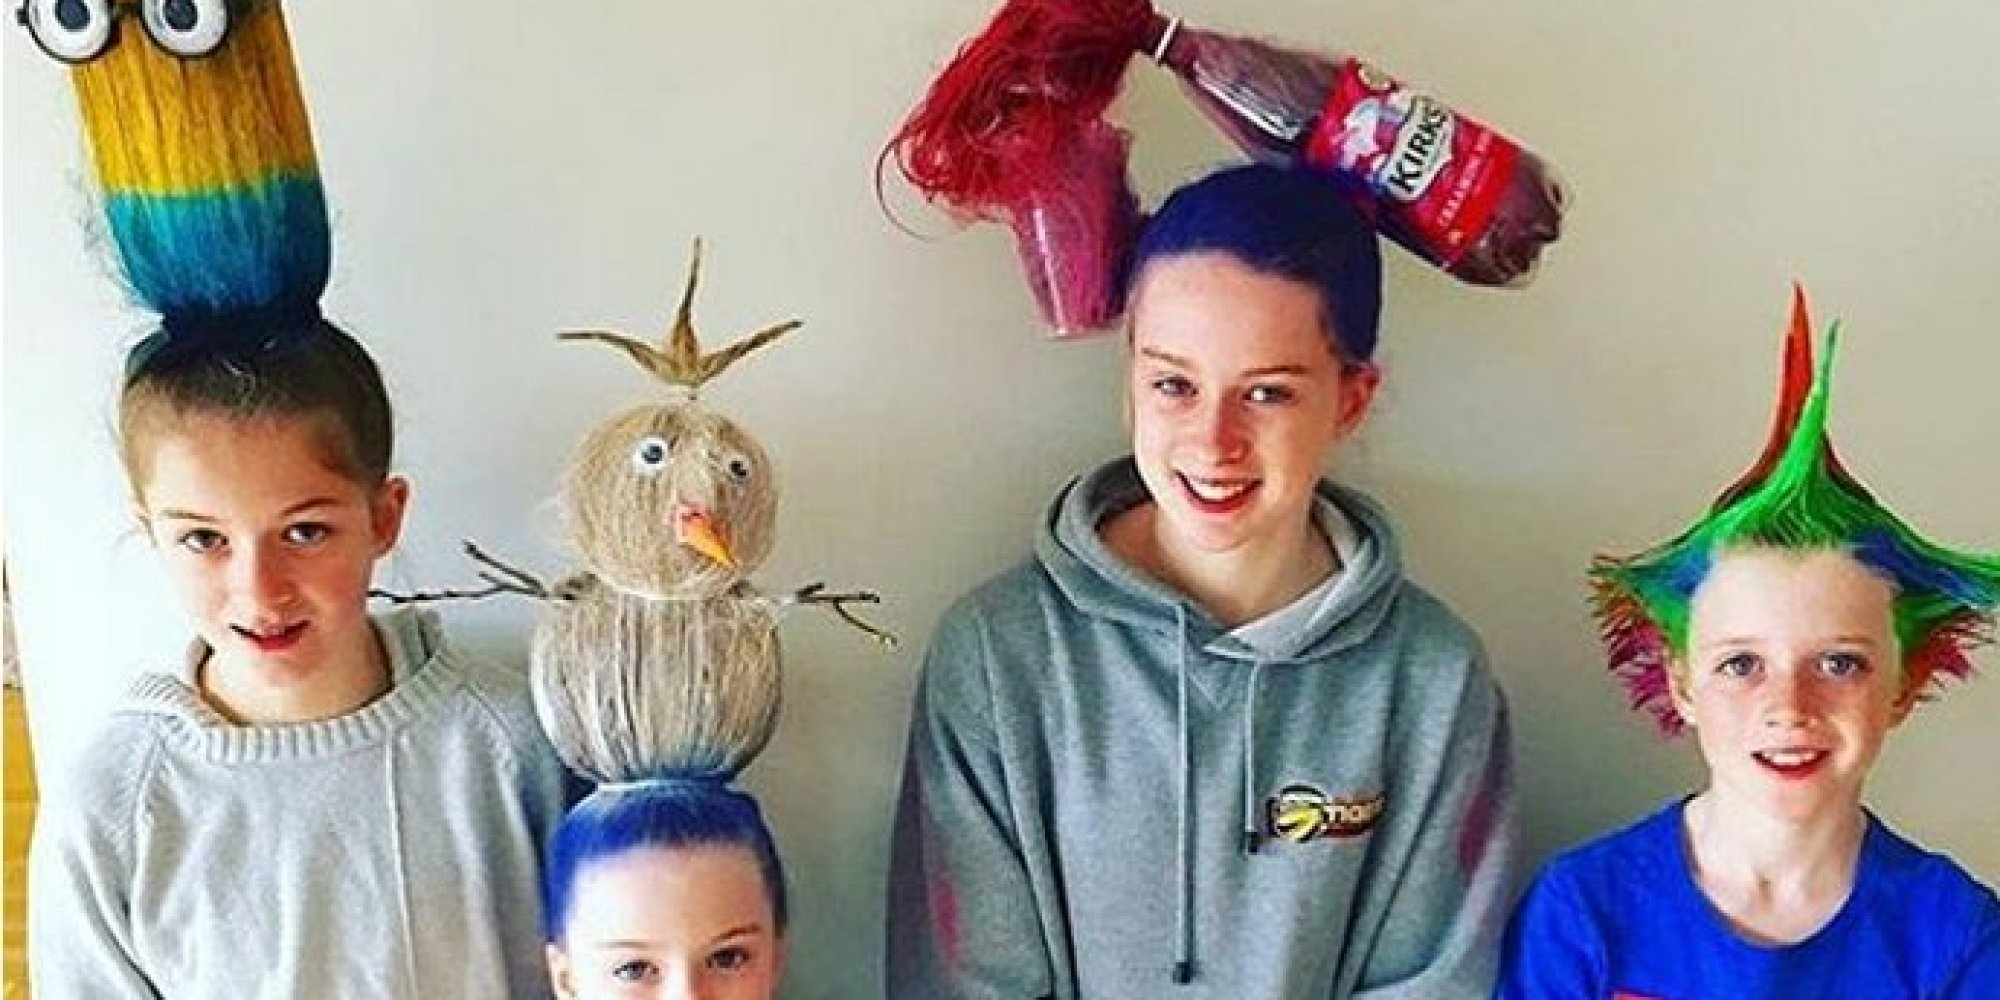 My Friend S Daughter Had Crazy Hair Day At School Today Funny